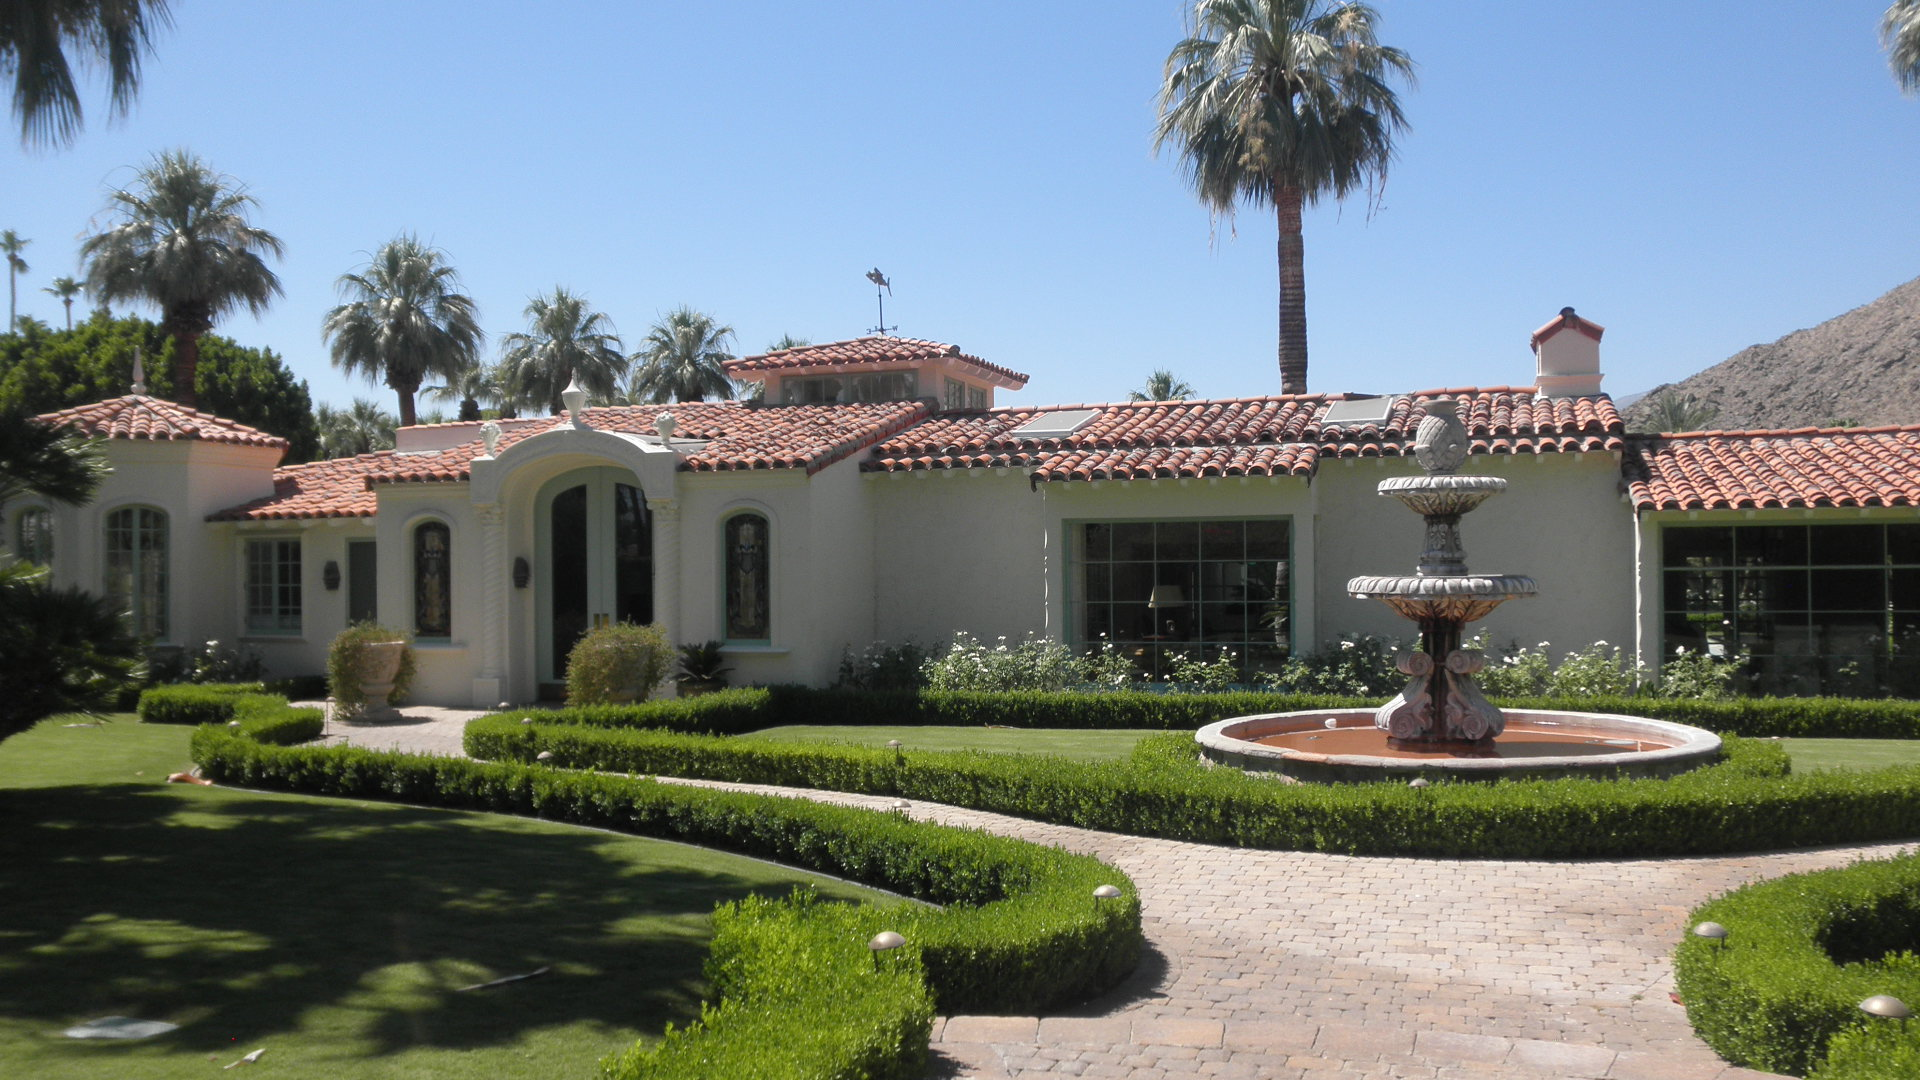 Olympus digital camera palm springs celebrity homes for Palm spring houses for sale